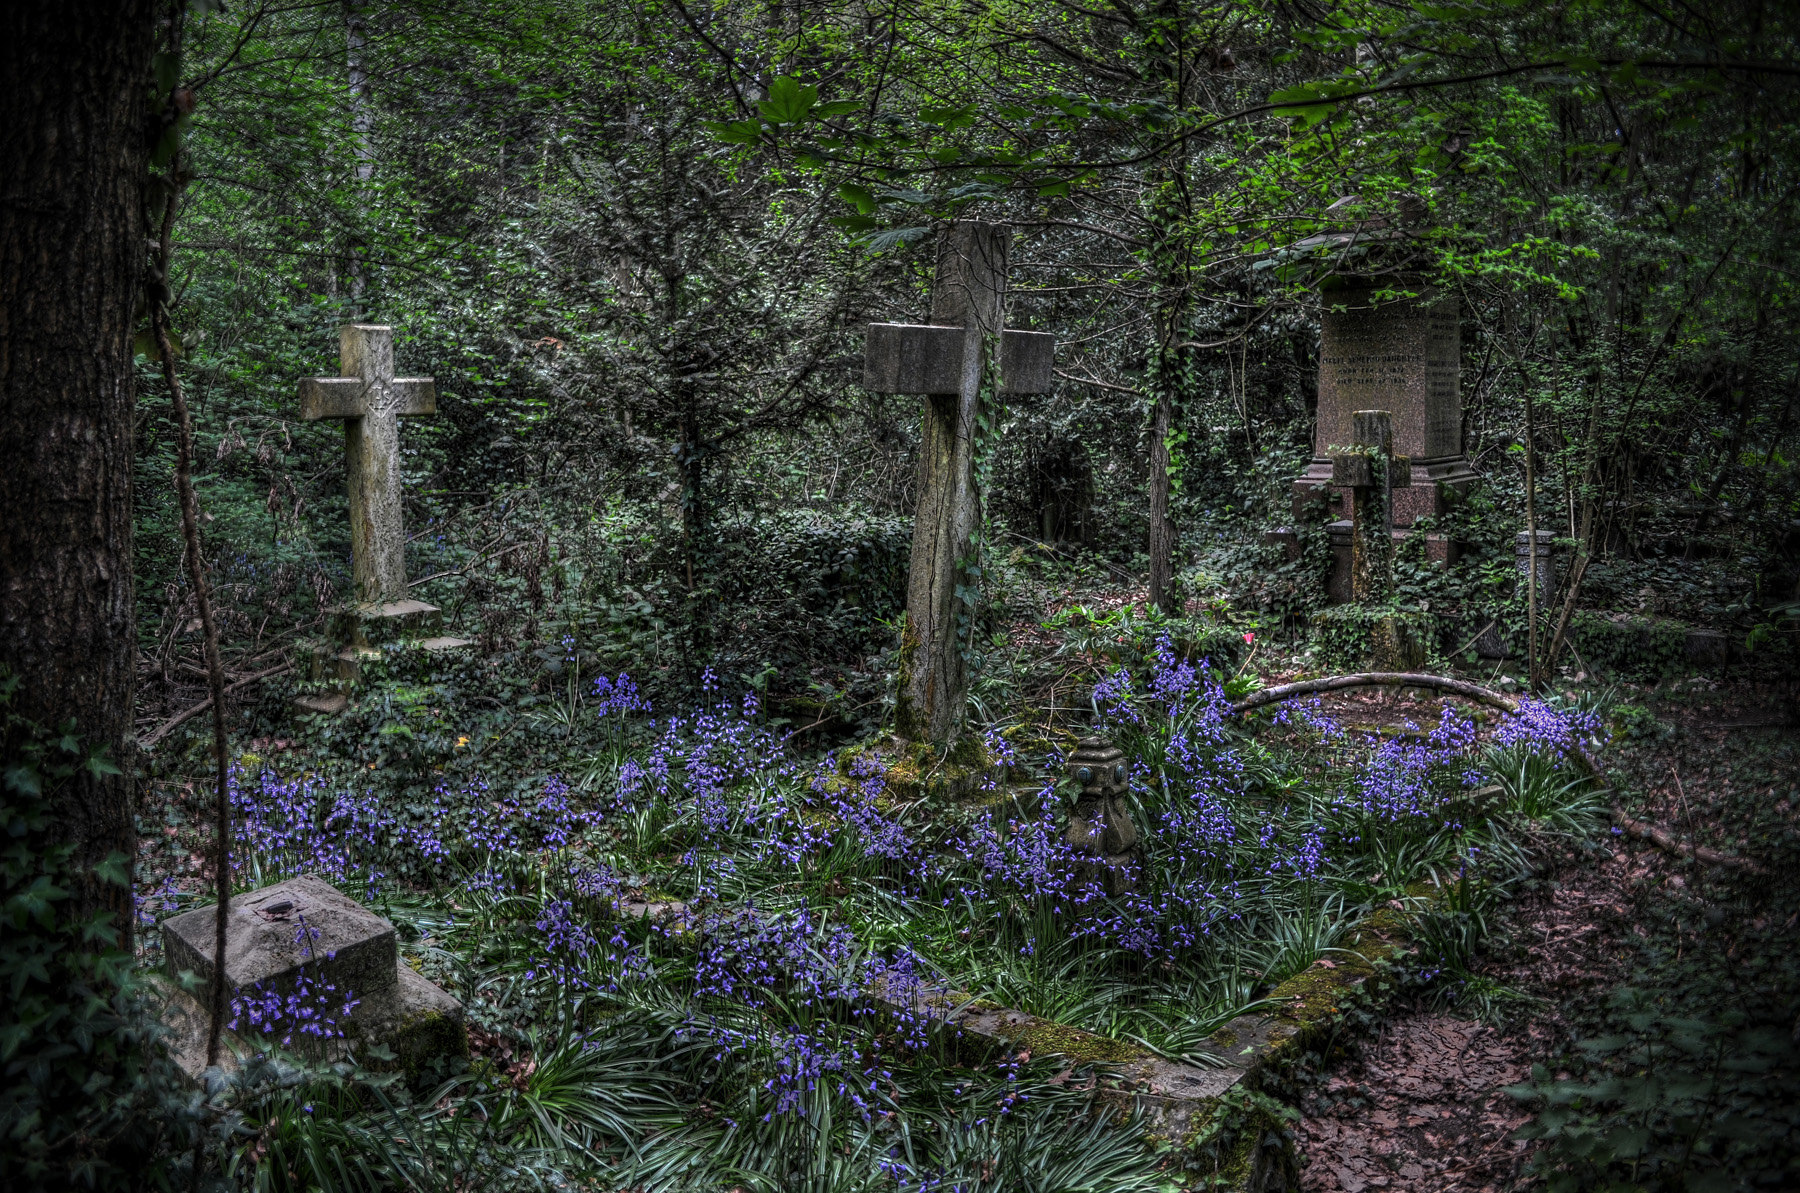 Graves - This forgotten unloved graveyard is rapidly being taken over by the trees. Most of the angels have lost their heads. Everything is ramshackle. Looks loveley